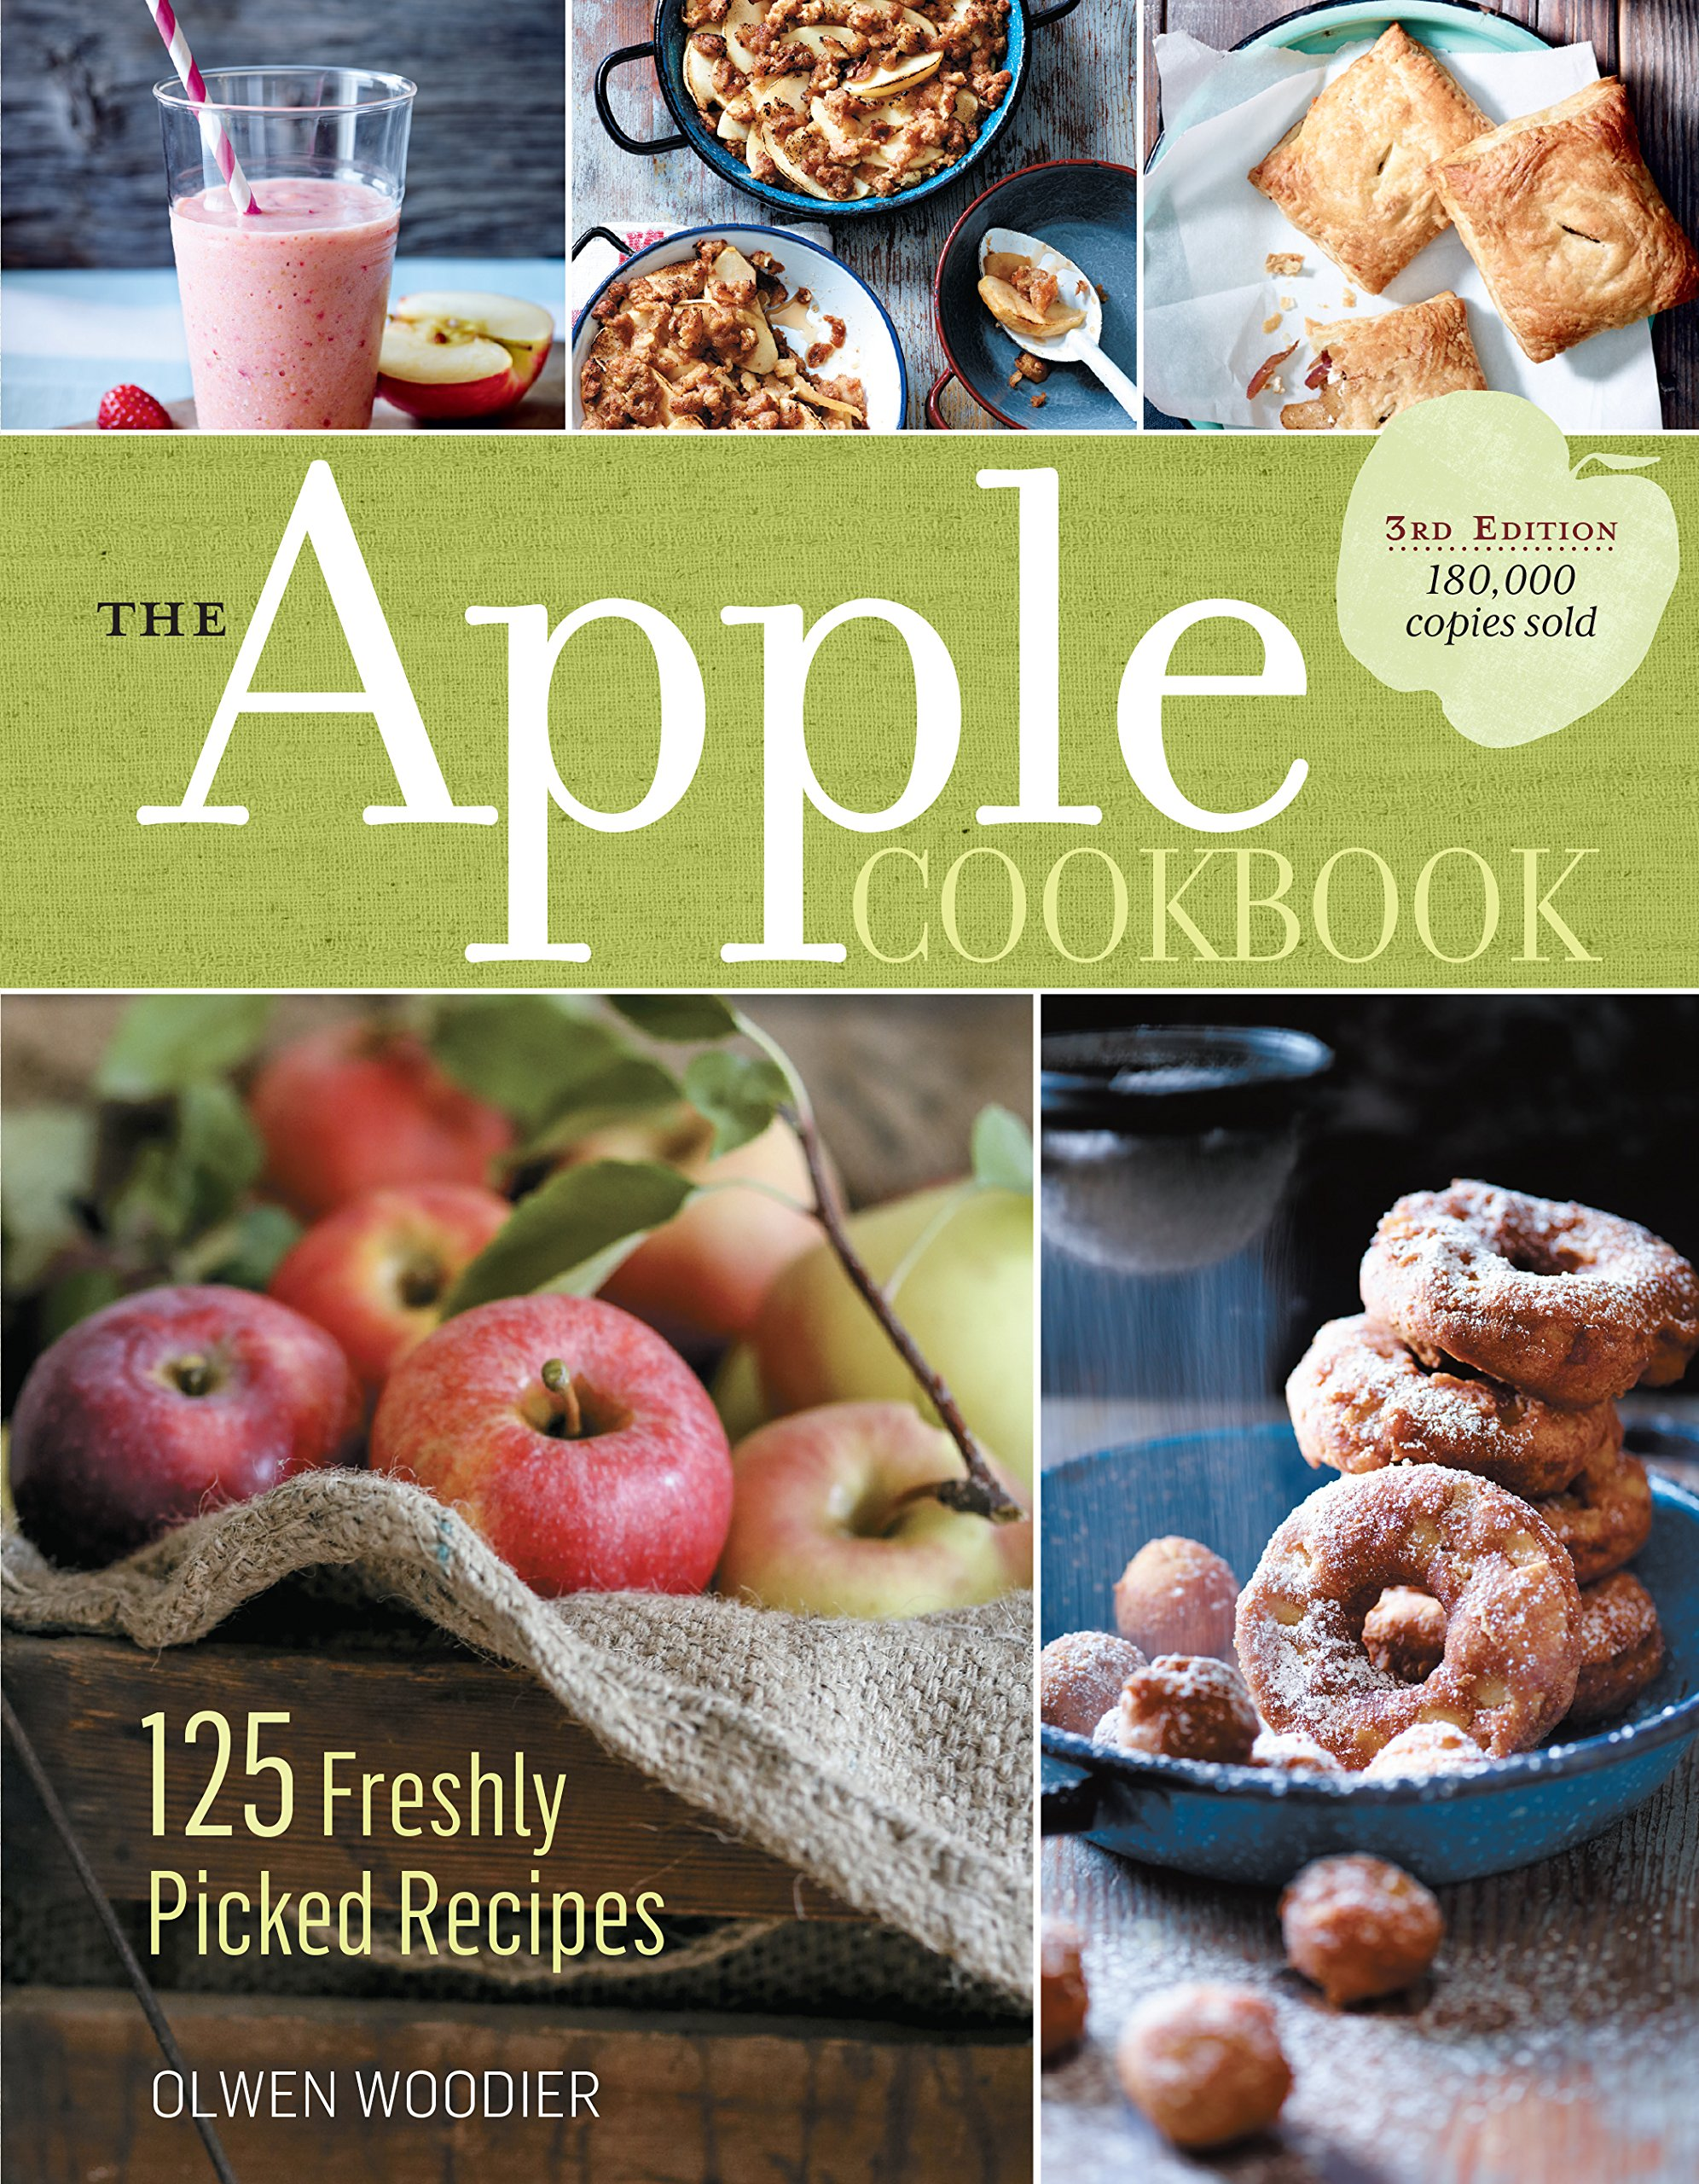 The Apple Cookbook | Image courtesy Amazon seller/author Olwen Woodier